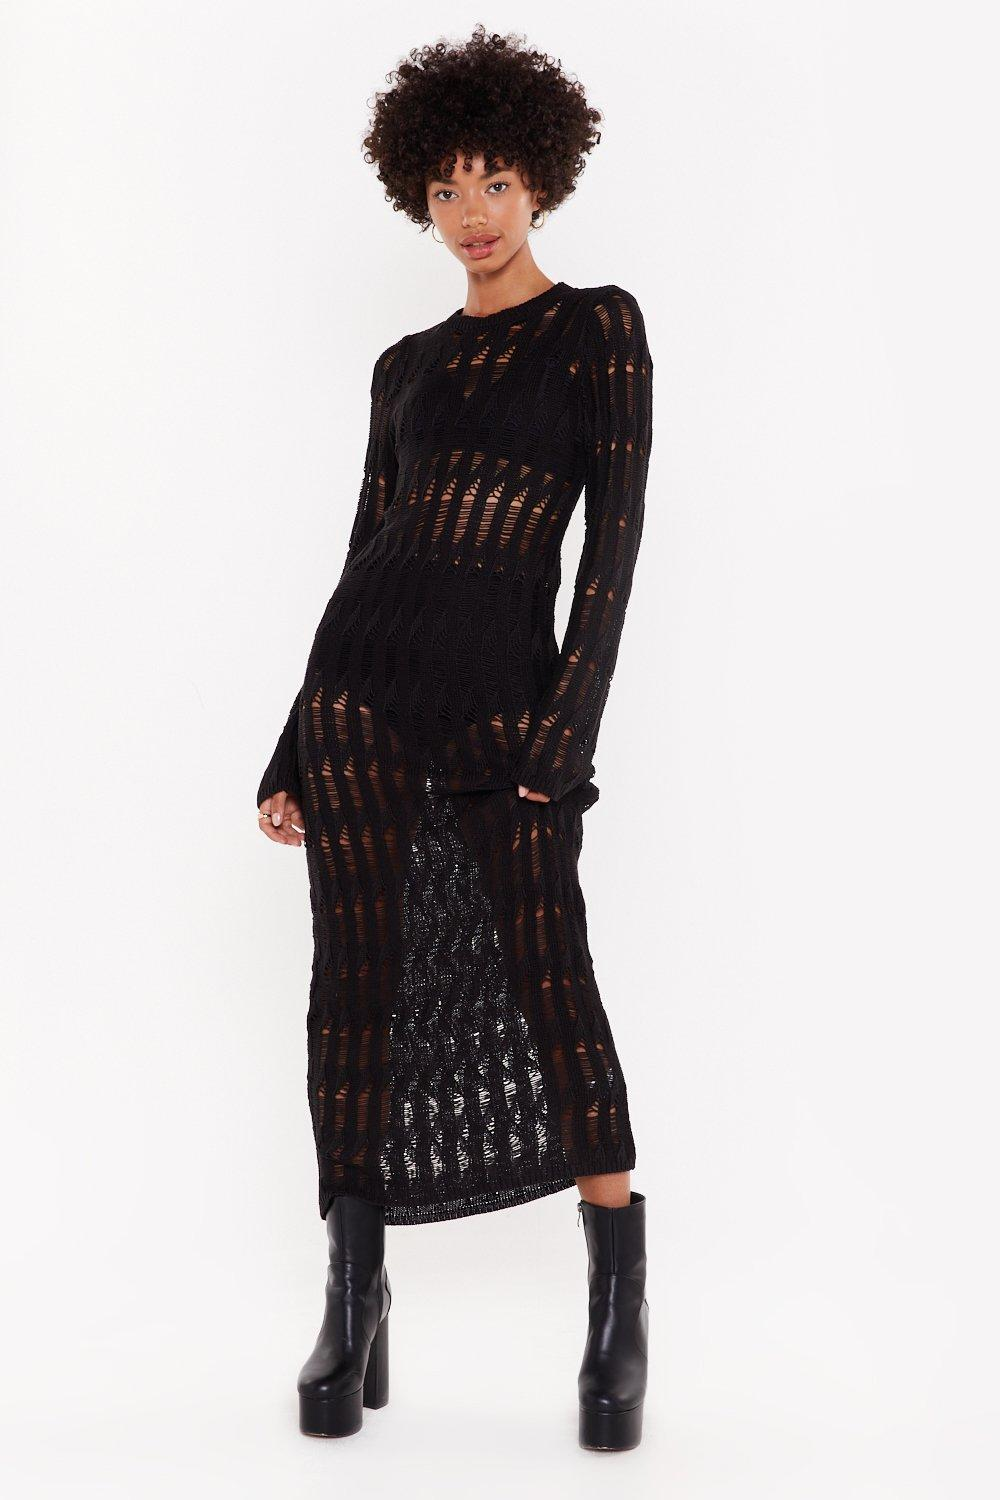 Trouble Is A Friend Distressed Knit Dress by Nasty Gal